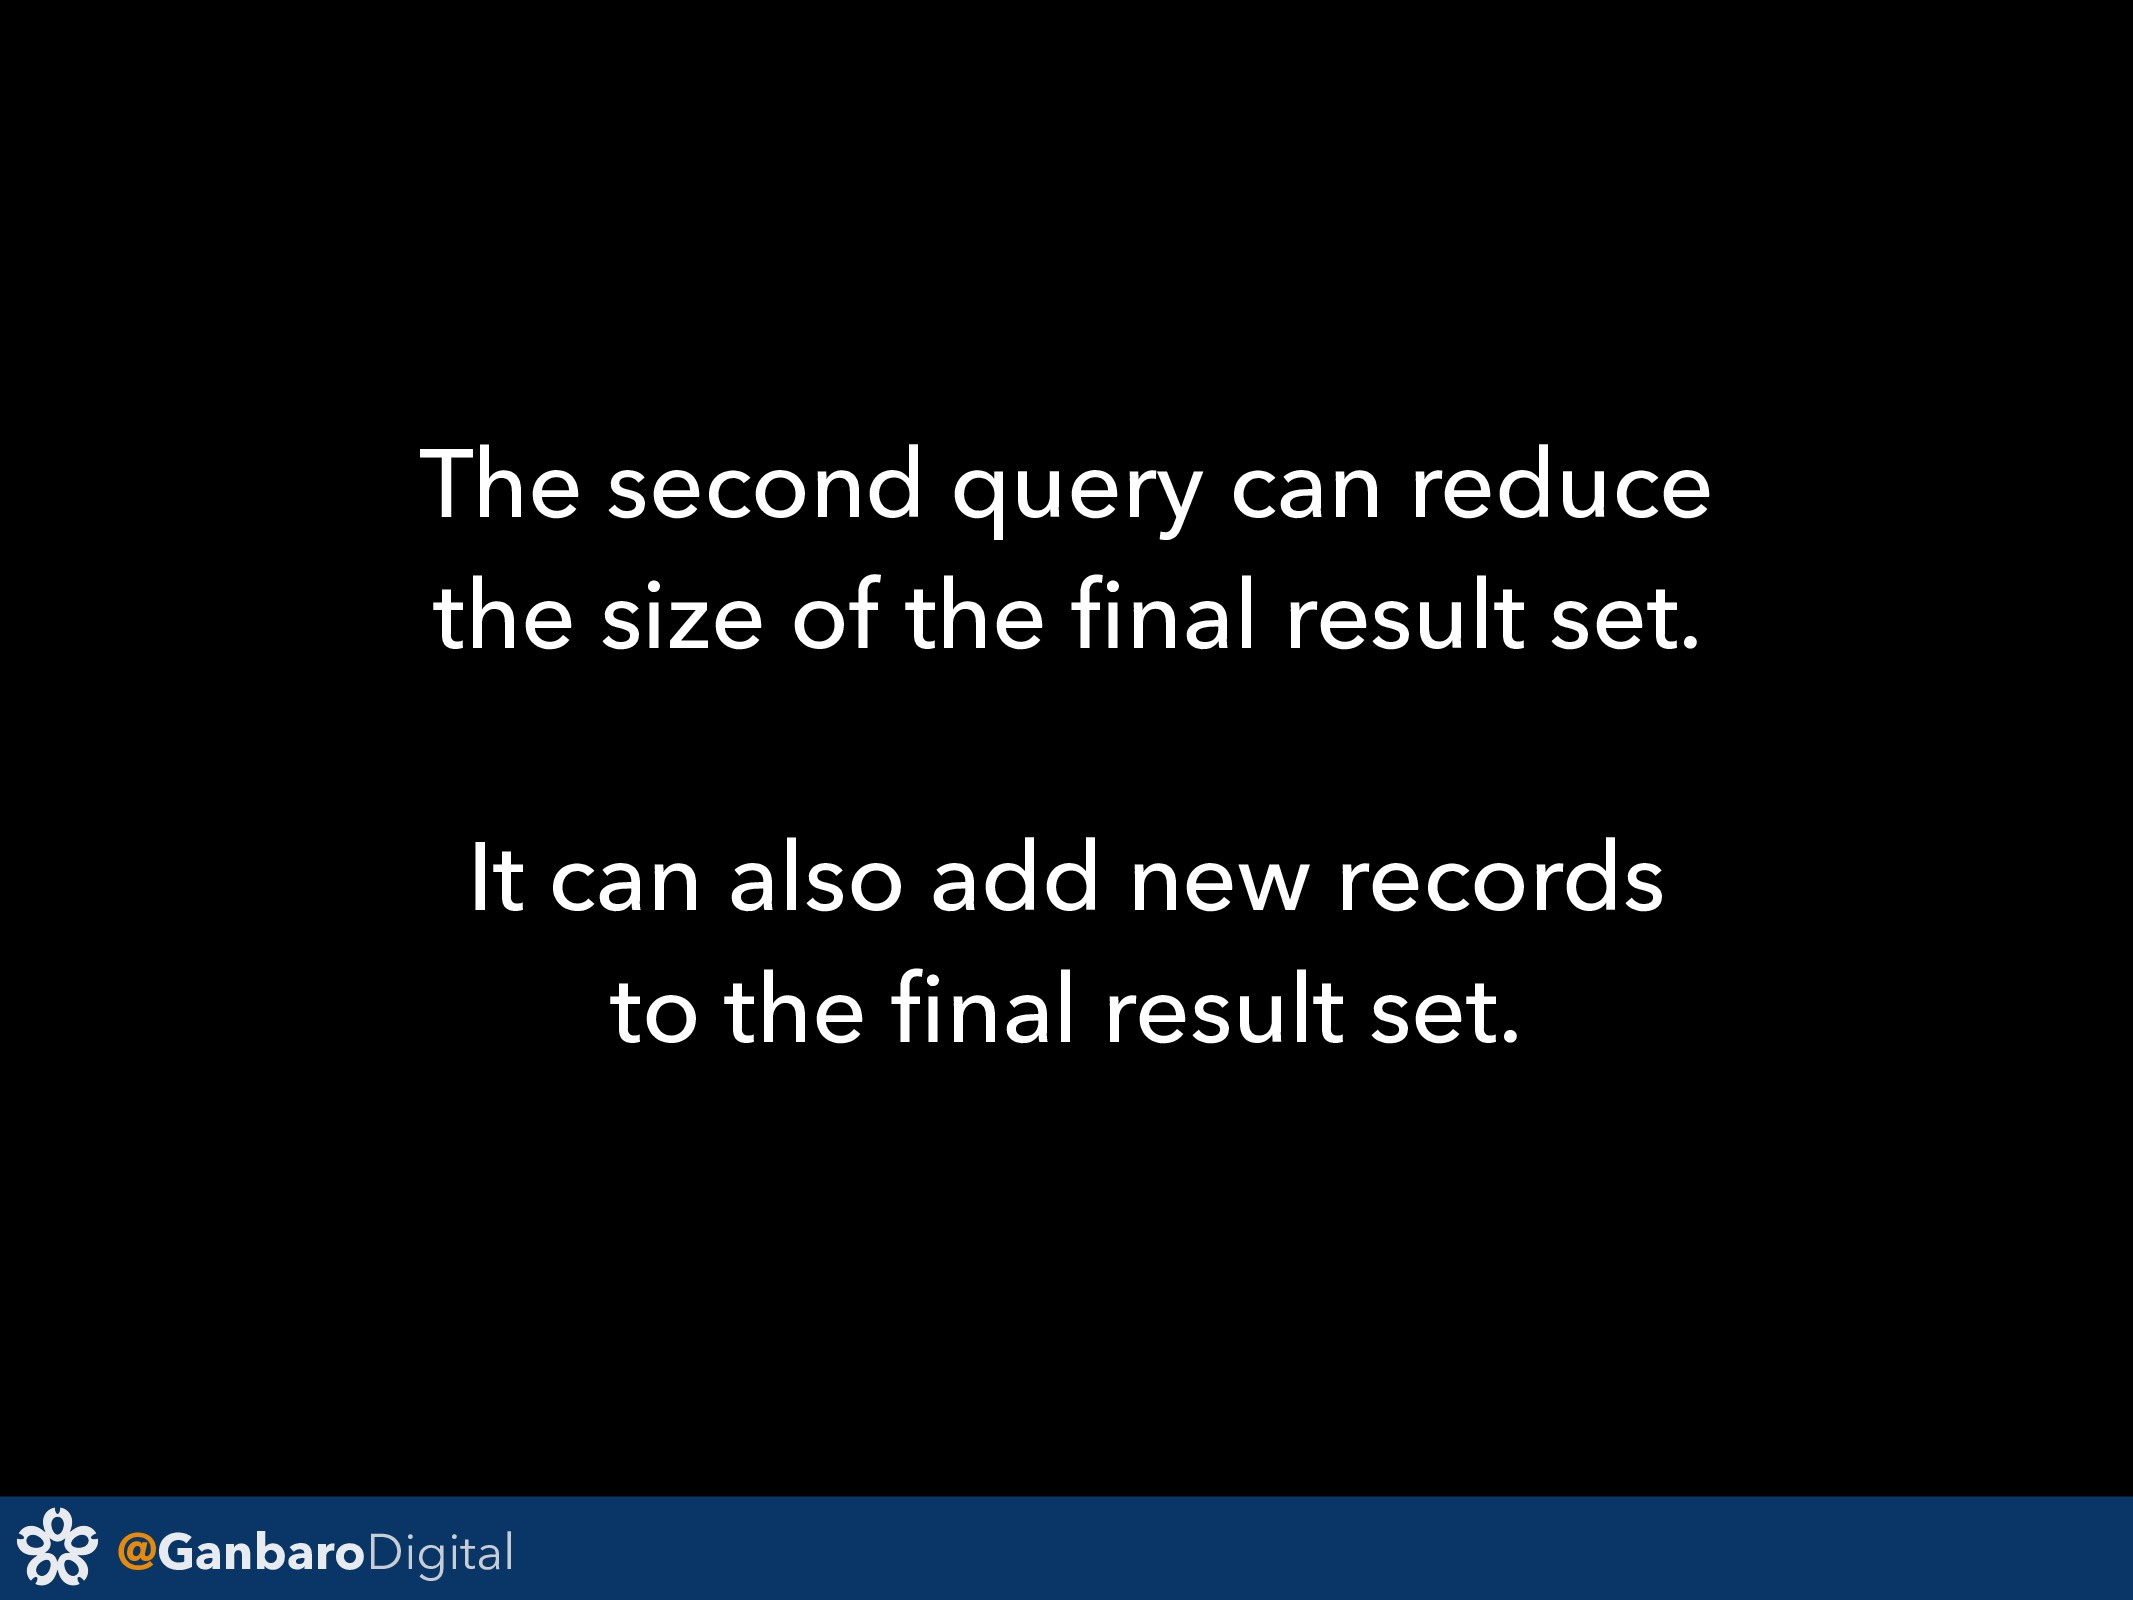 @GanbaroDigital The second query can reduce the...